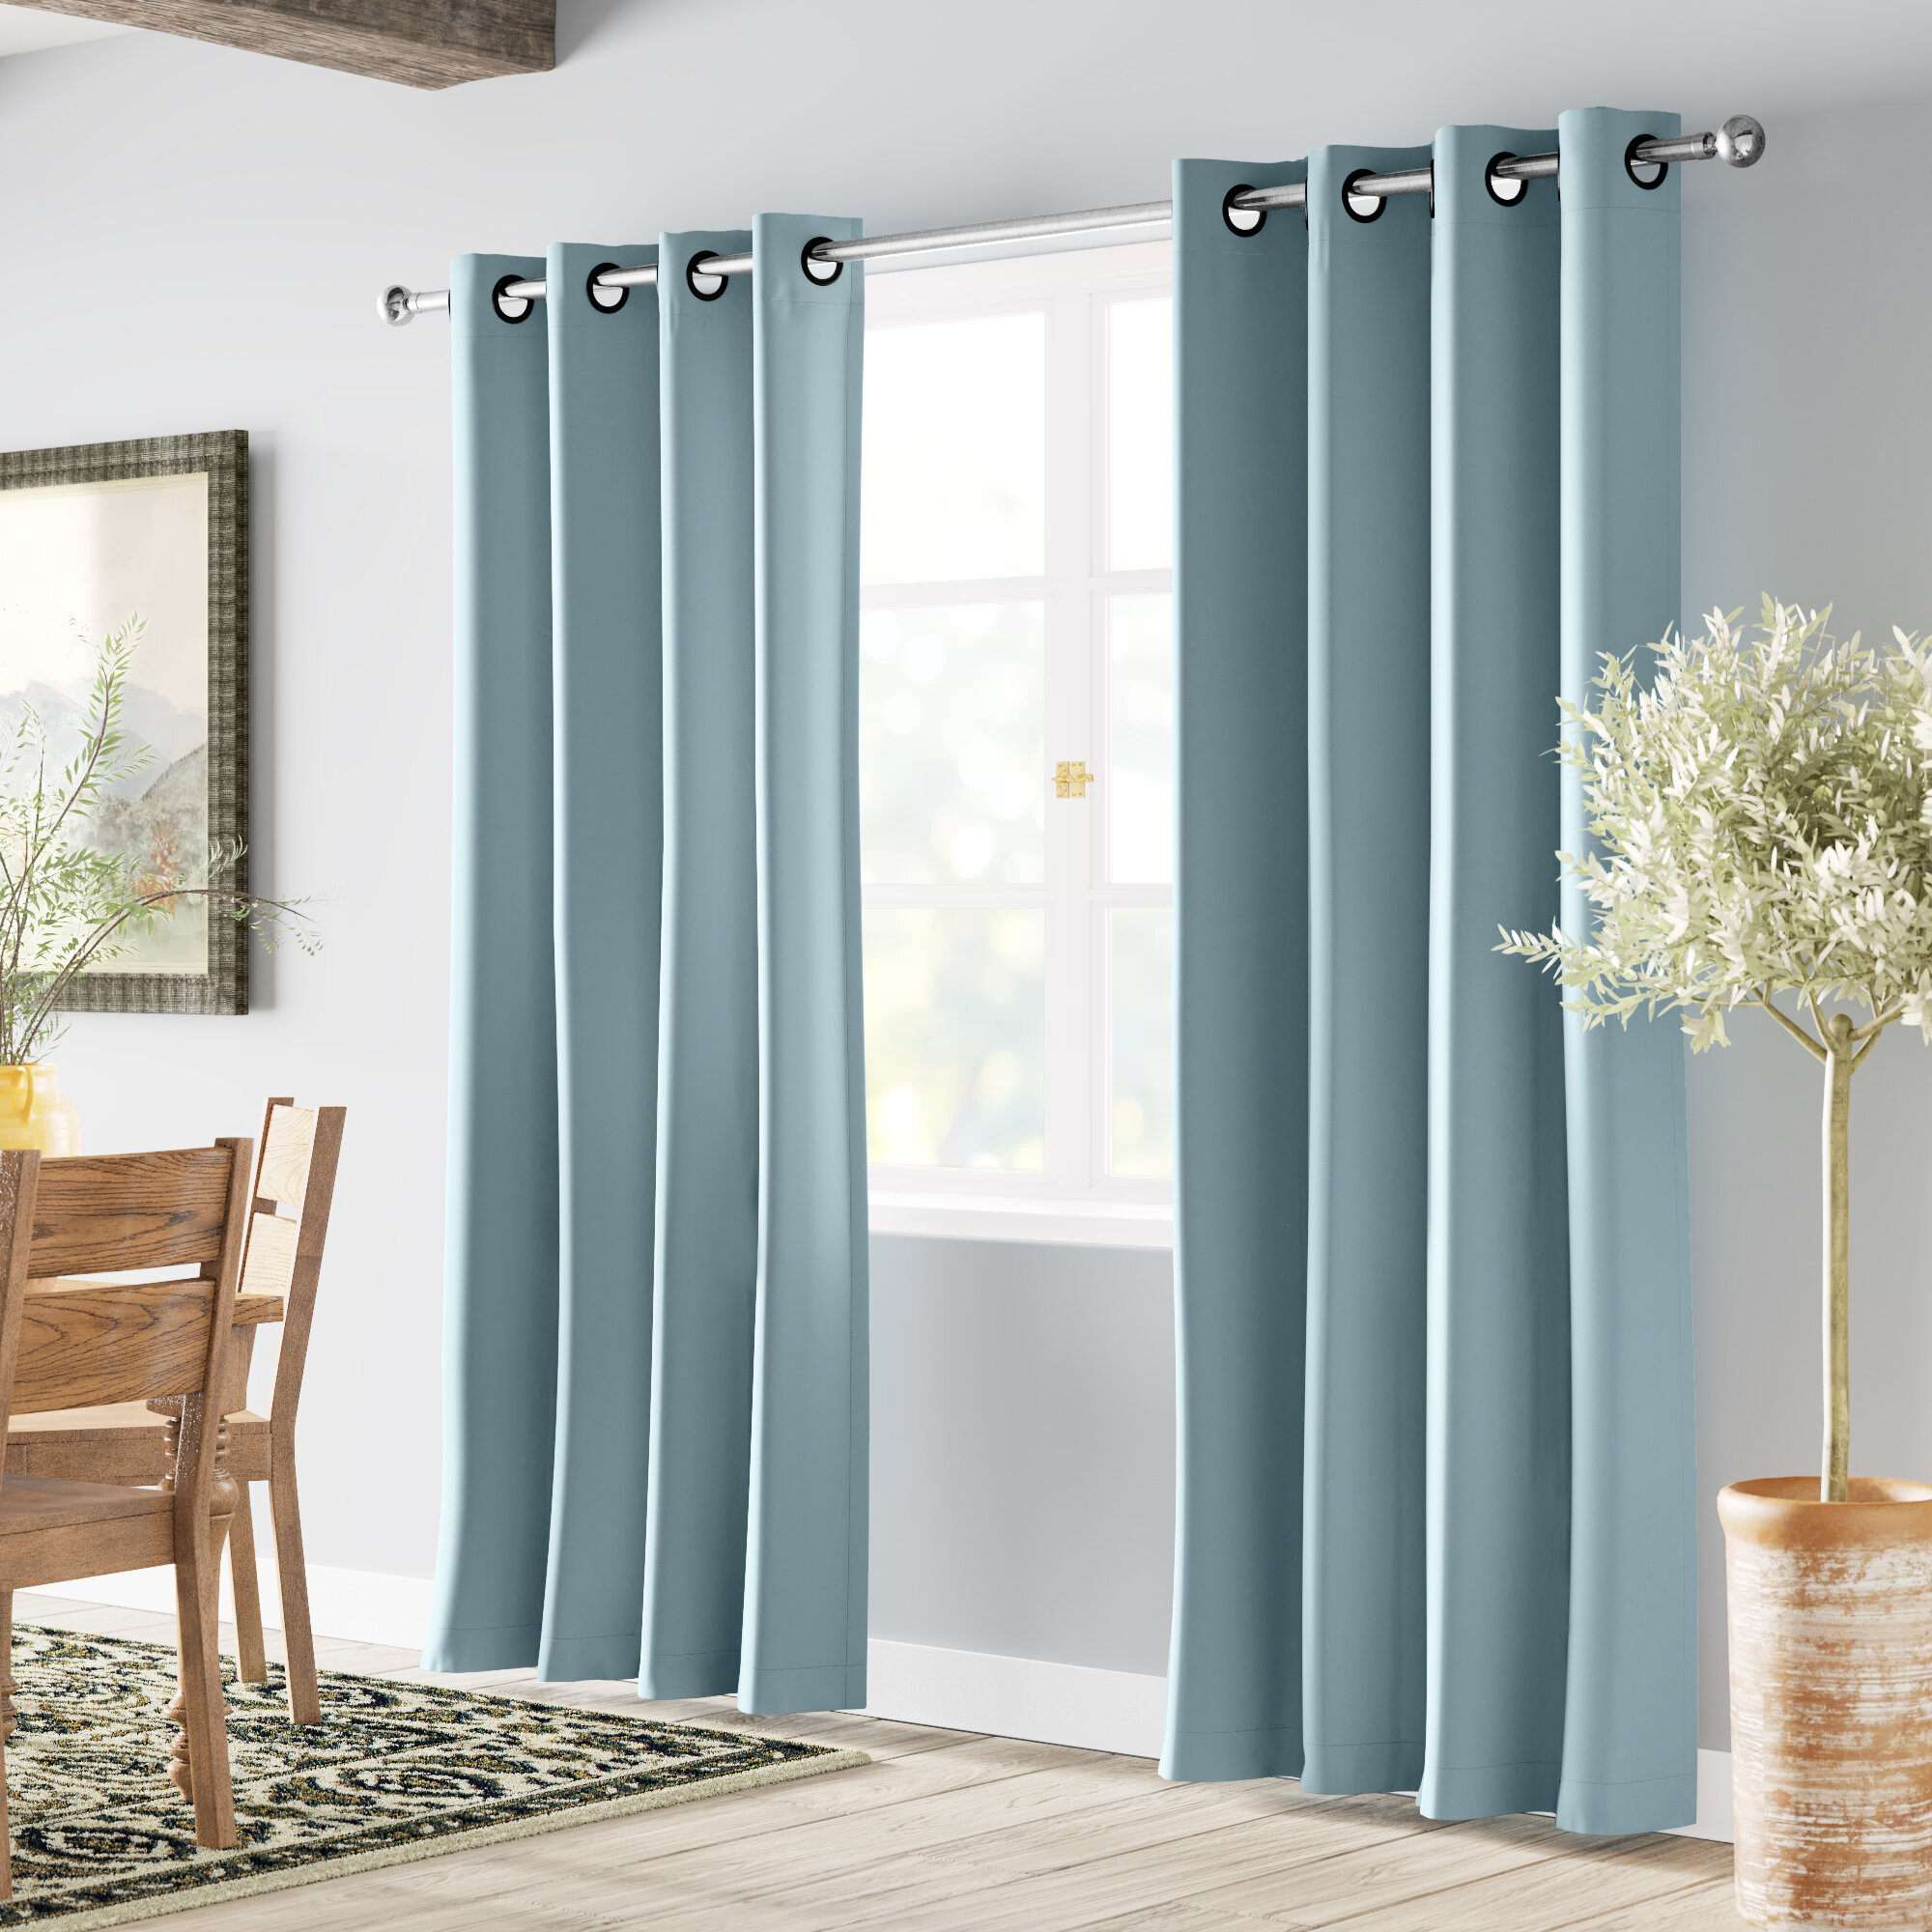 Grommet Panels 52 By 108 Inch Set Of 2 Turquoize Black Extra Long Curtains For Patio Door Thermal Insulated Blackout Window Treatment Panels For Sliding Glass Door Energy Saving Curain Draperis Home